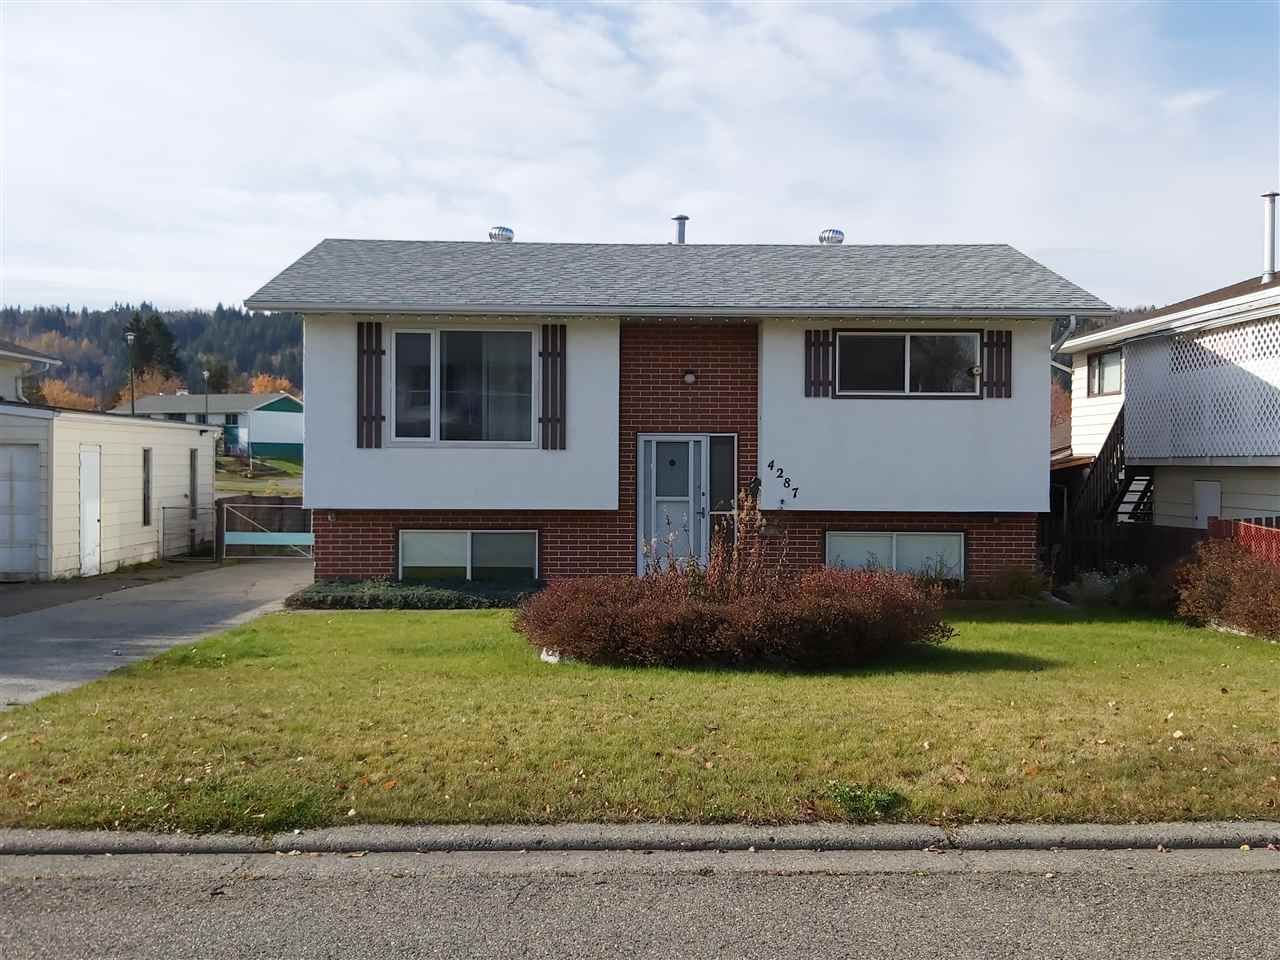 Main Photo: 4287 MERTON Crescent in Prince George: Lakewood House for sale (PG City West (Zone 71))  : MLS®# R2413754